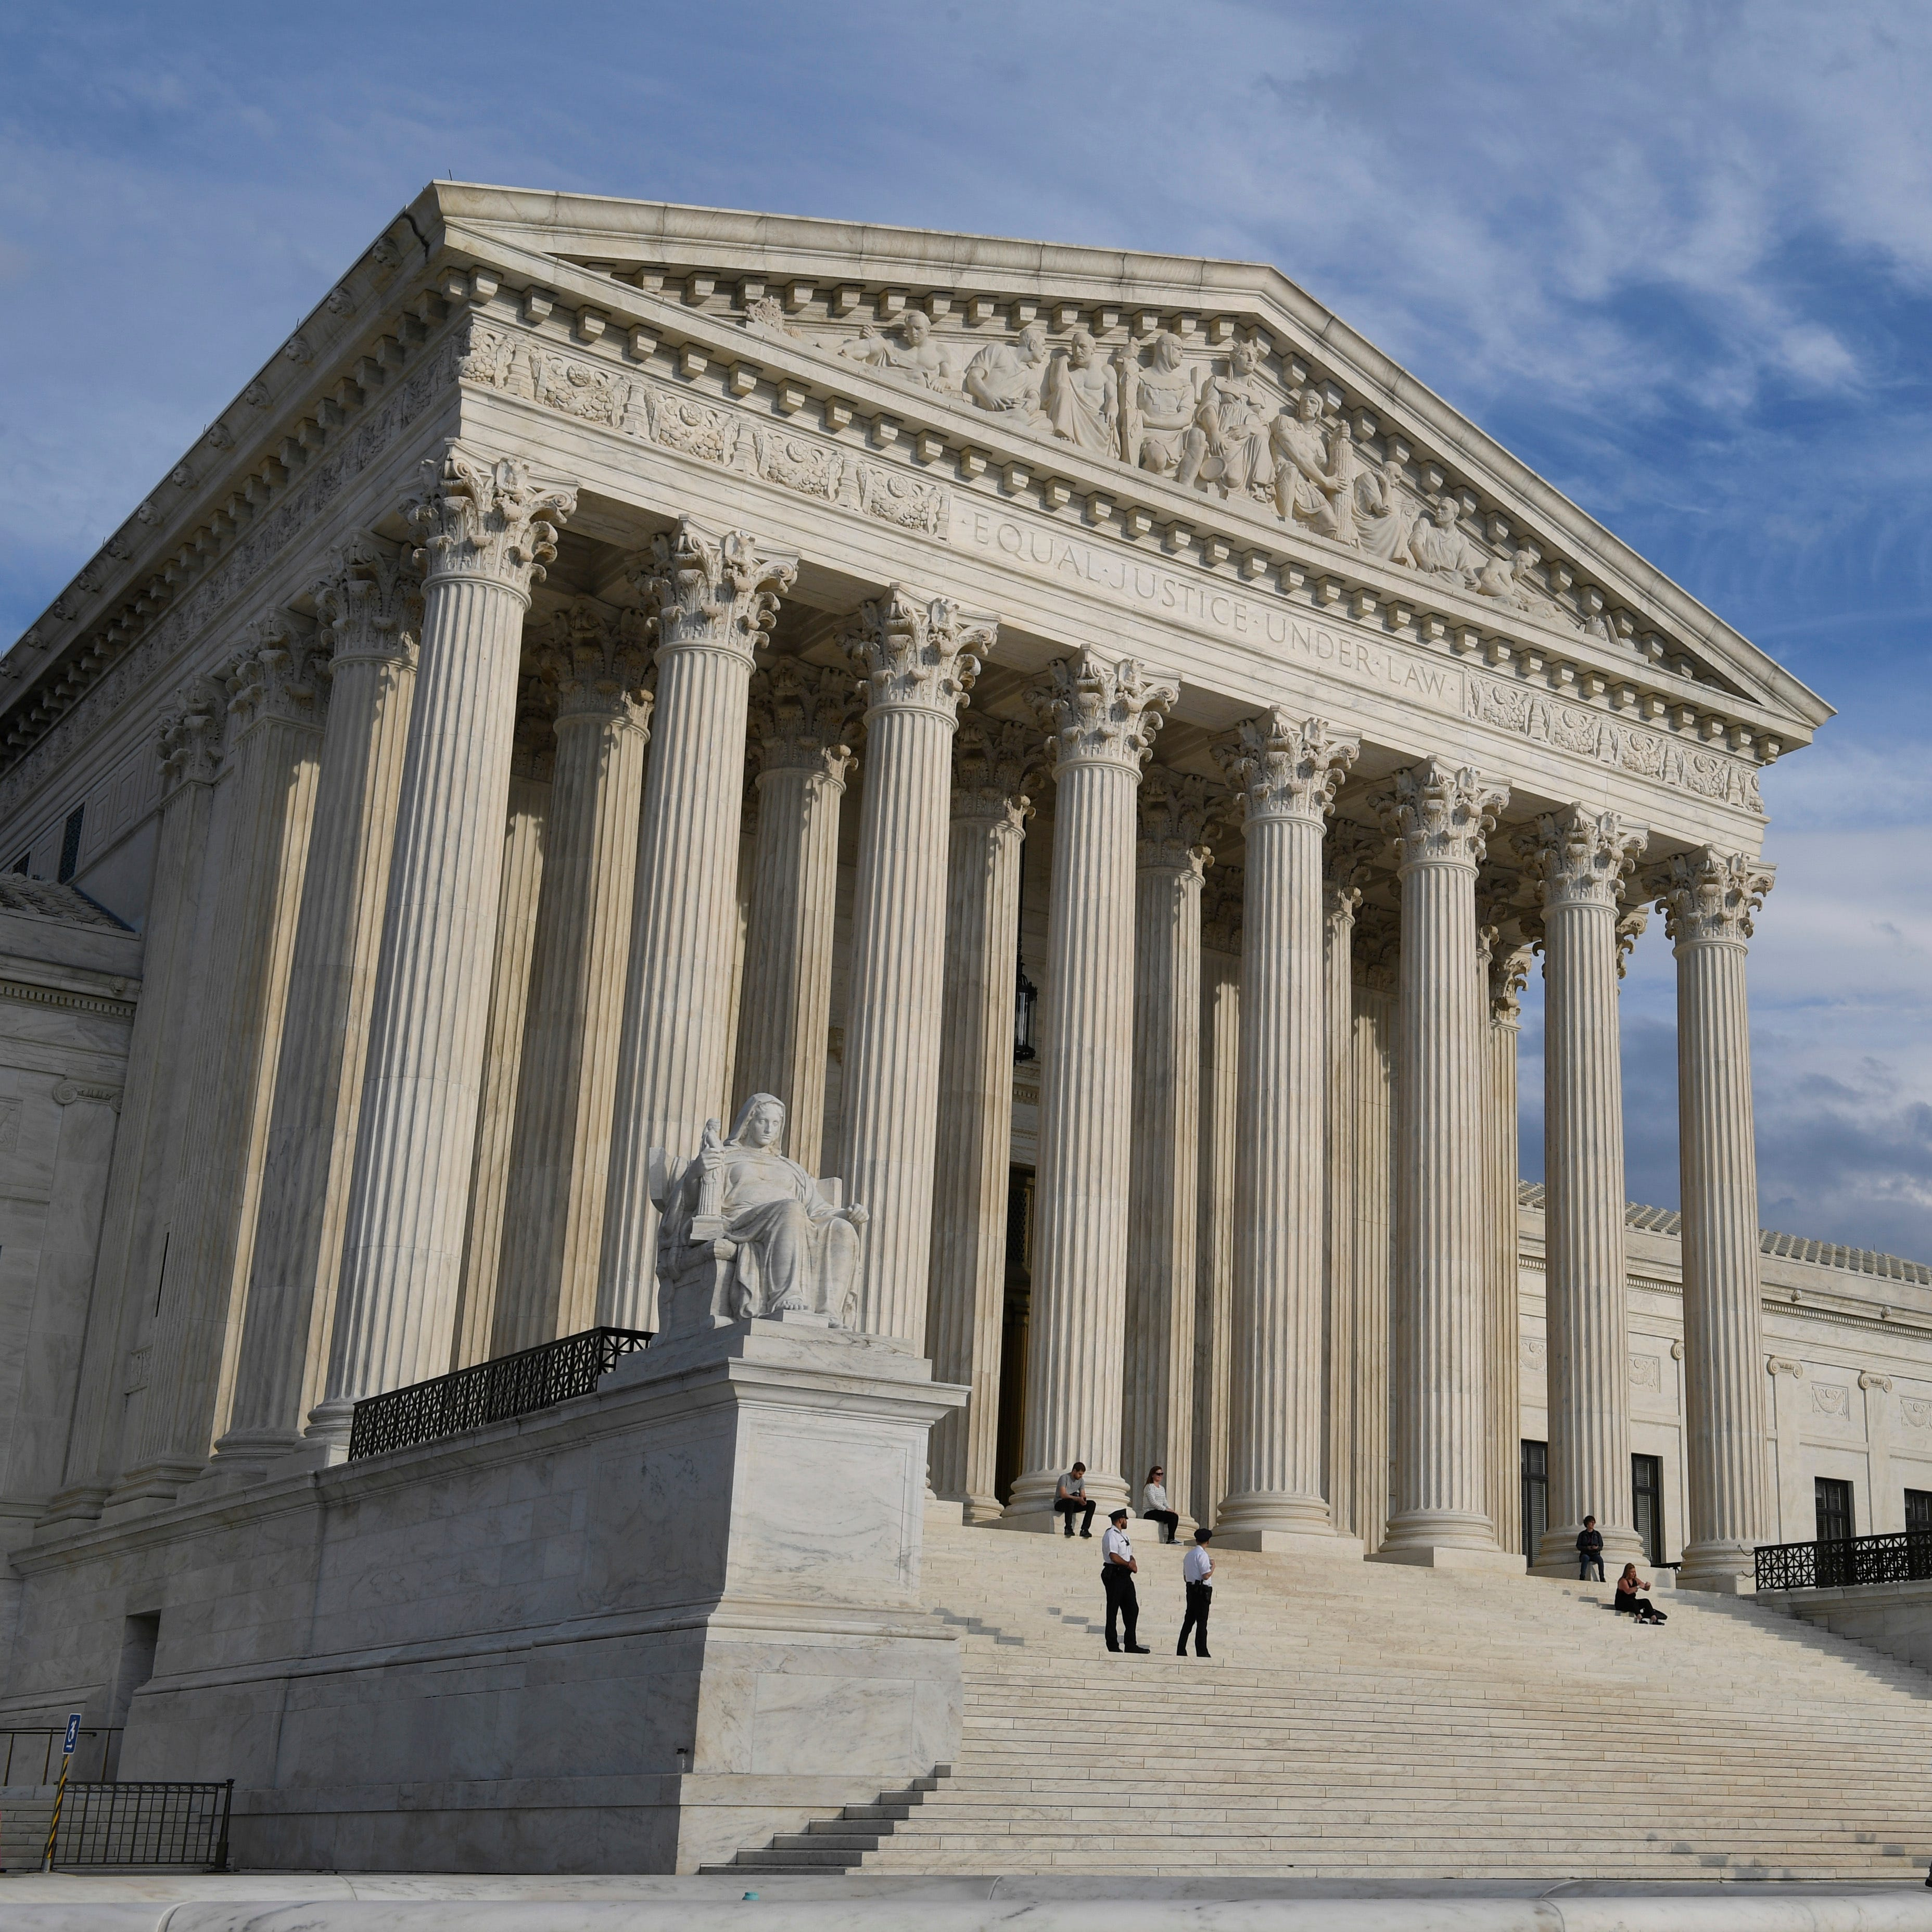 U.S. Supreme Court stays decision ordering political redistricting in Michigan